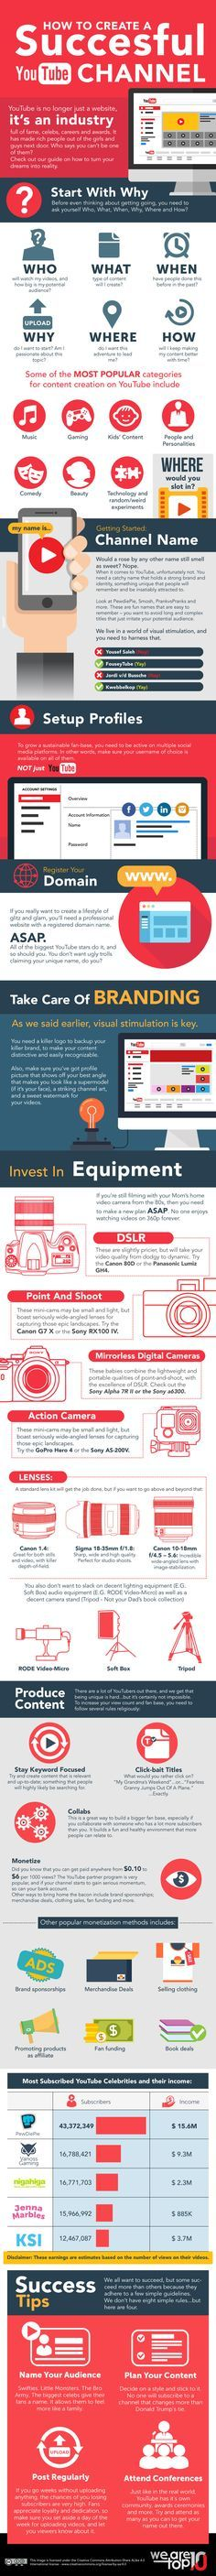 How to Create a Successful #YouTube Channel #Infographic #SocialMedia